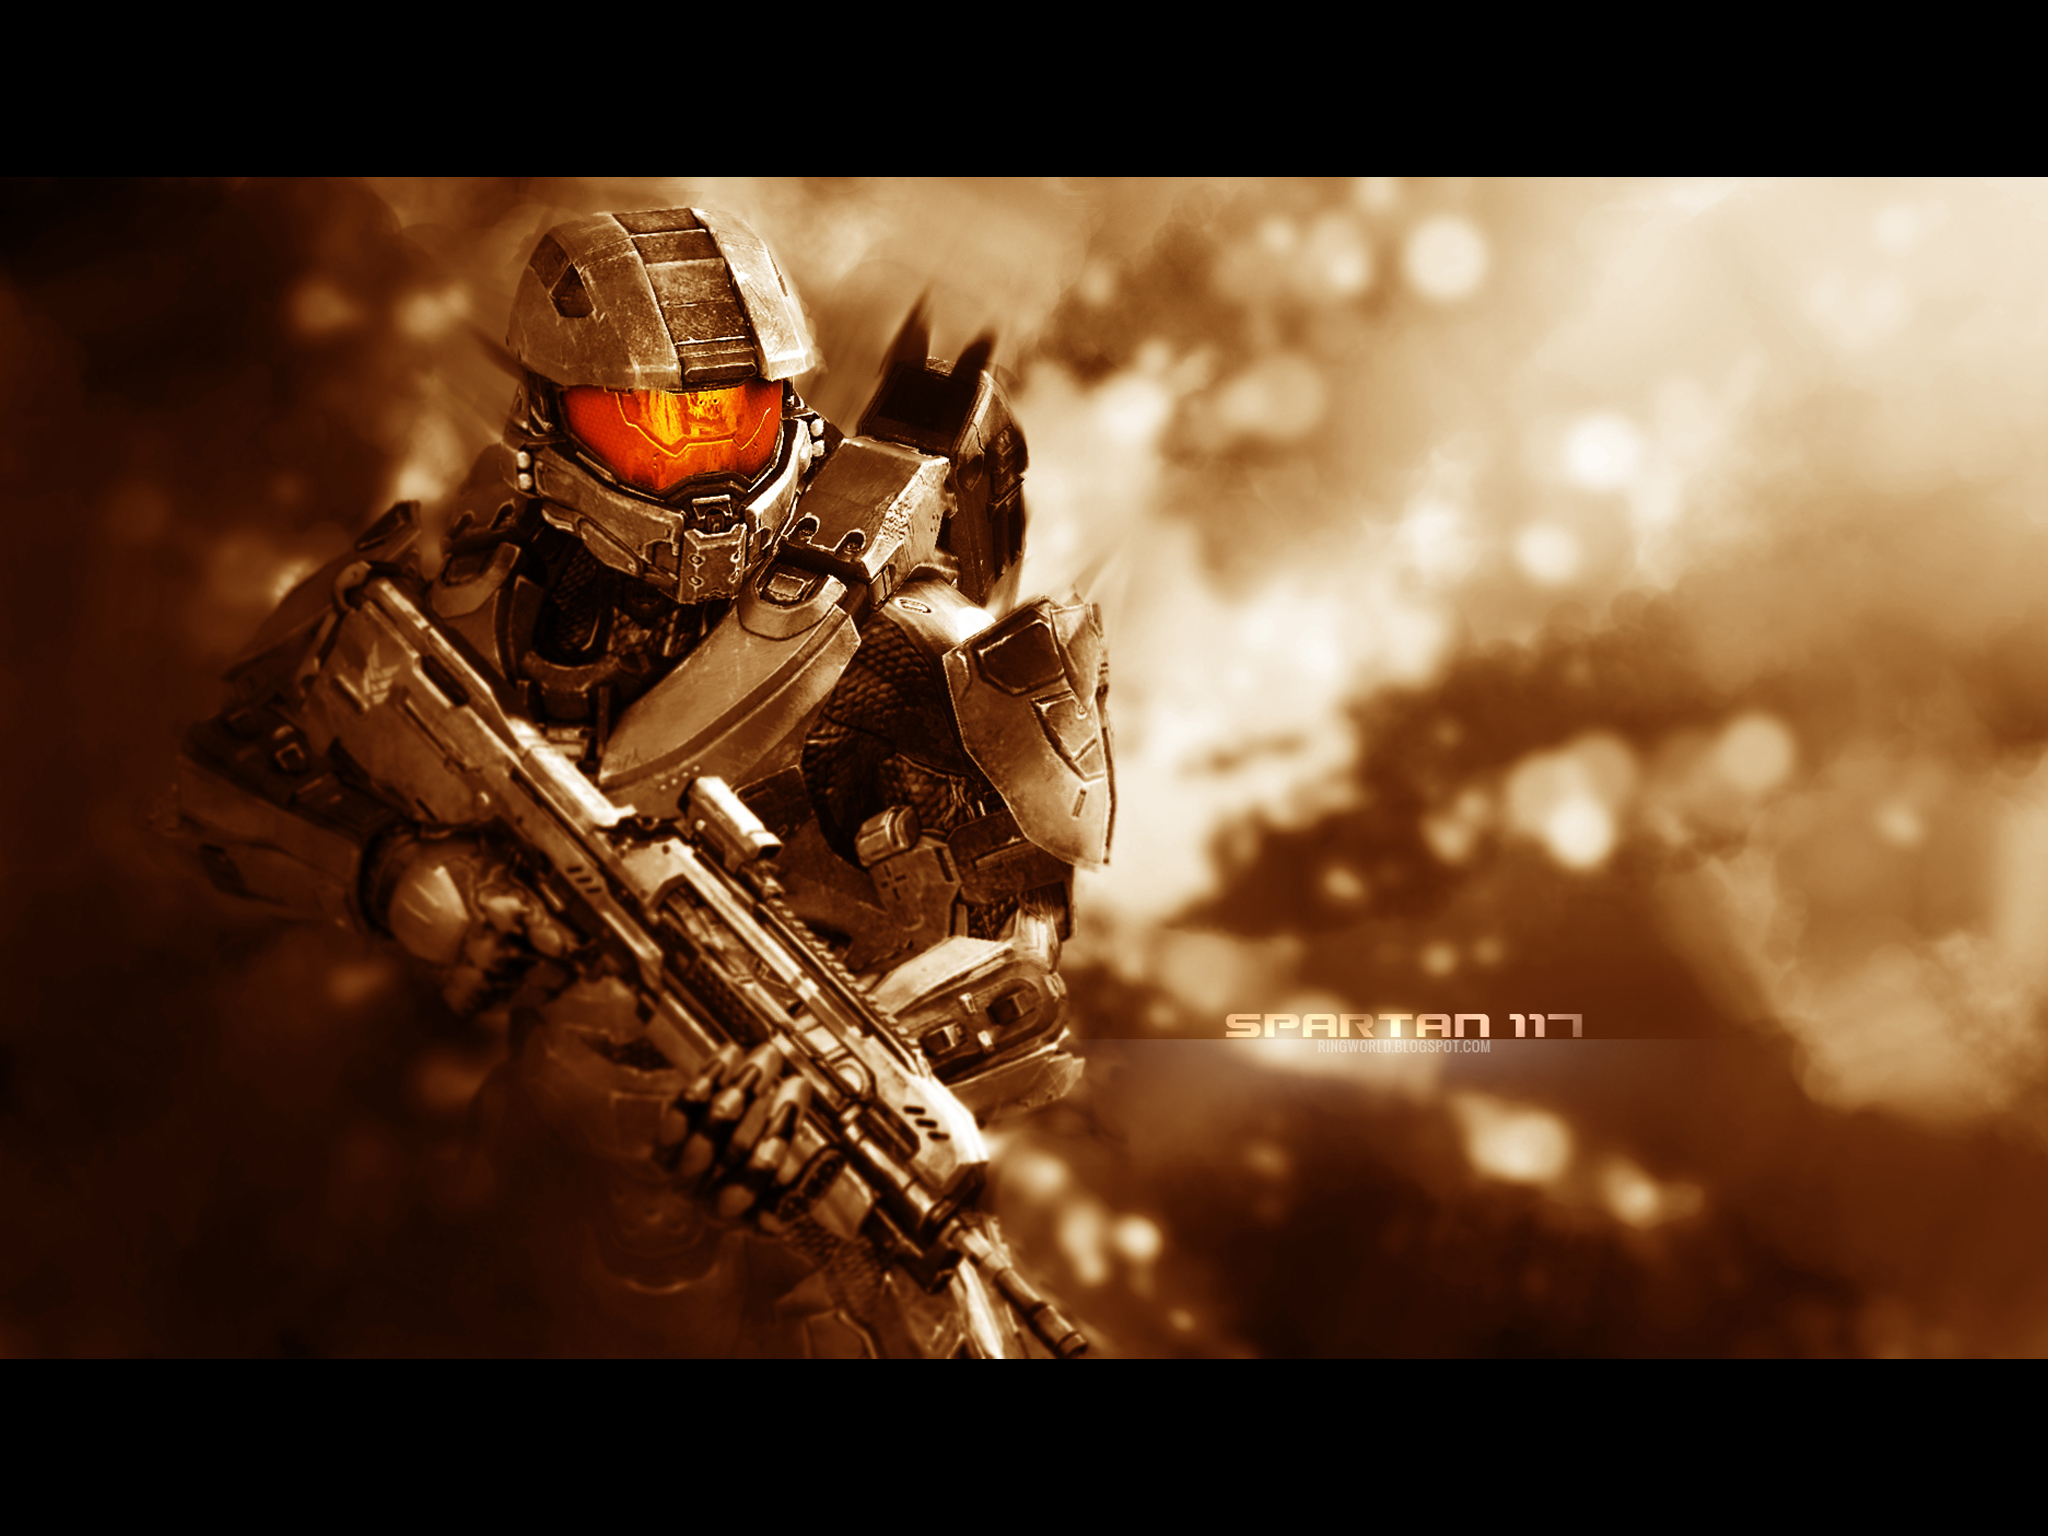 Halo 4 master chief ipad wallpaper 2 by smyf on deviantart halo 4 master chief ipad wallpaper 2 by smyf voltagebd Image collections